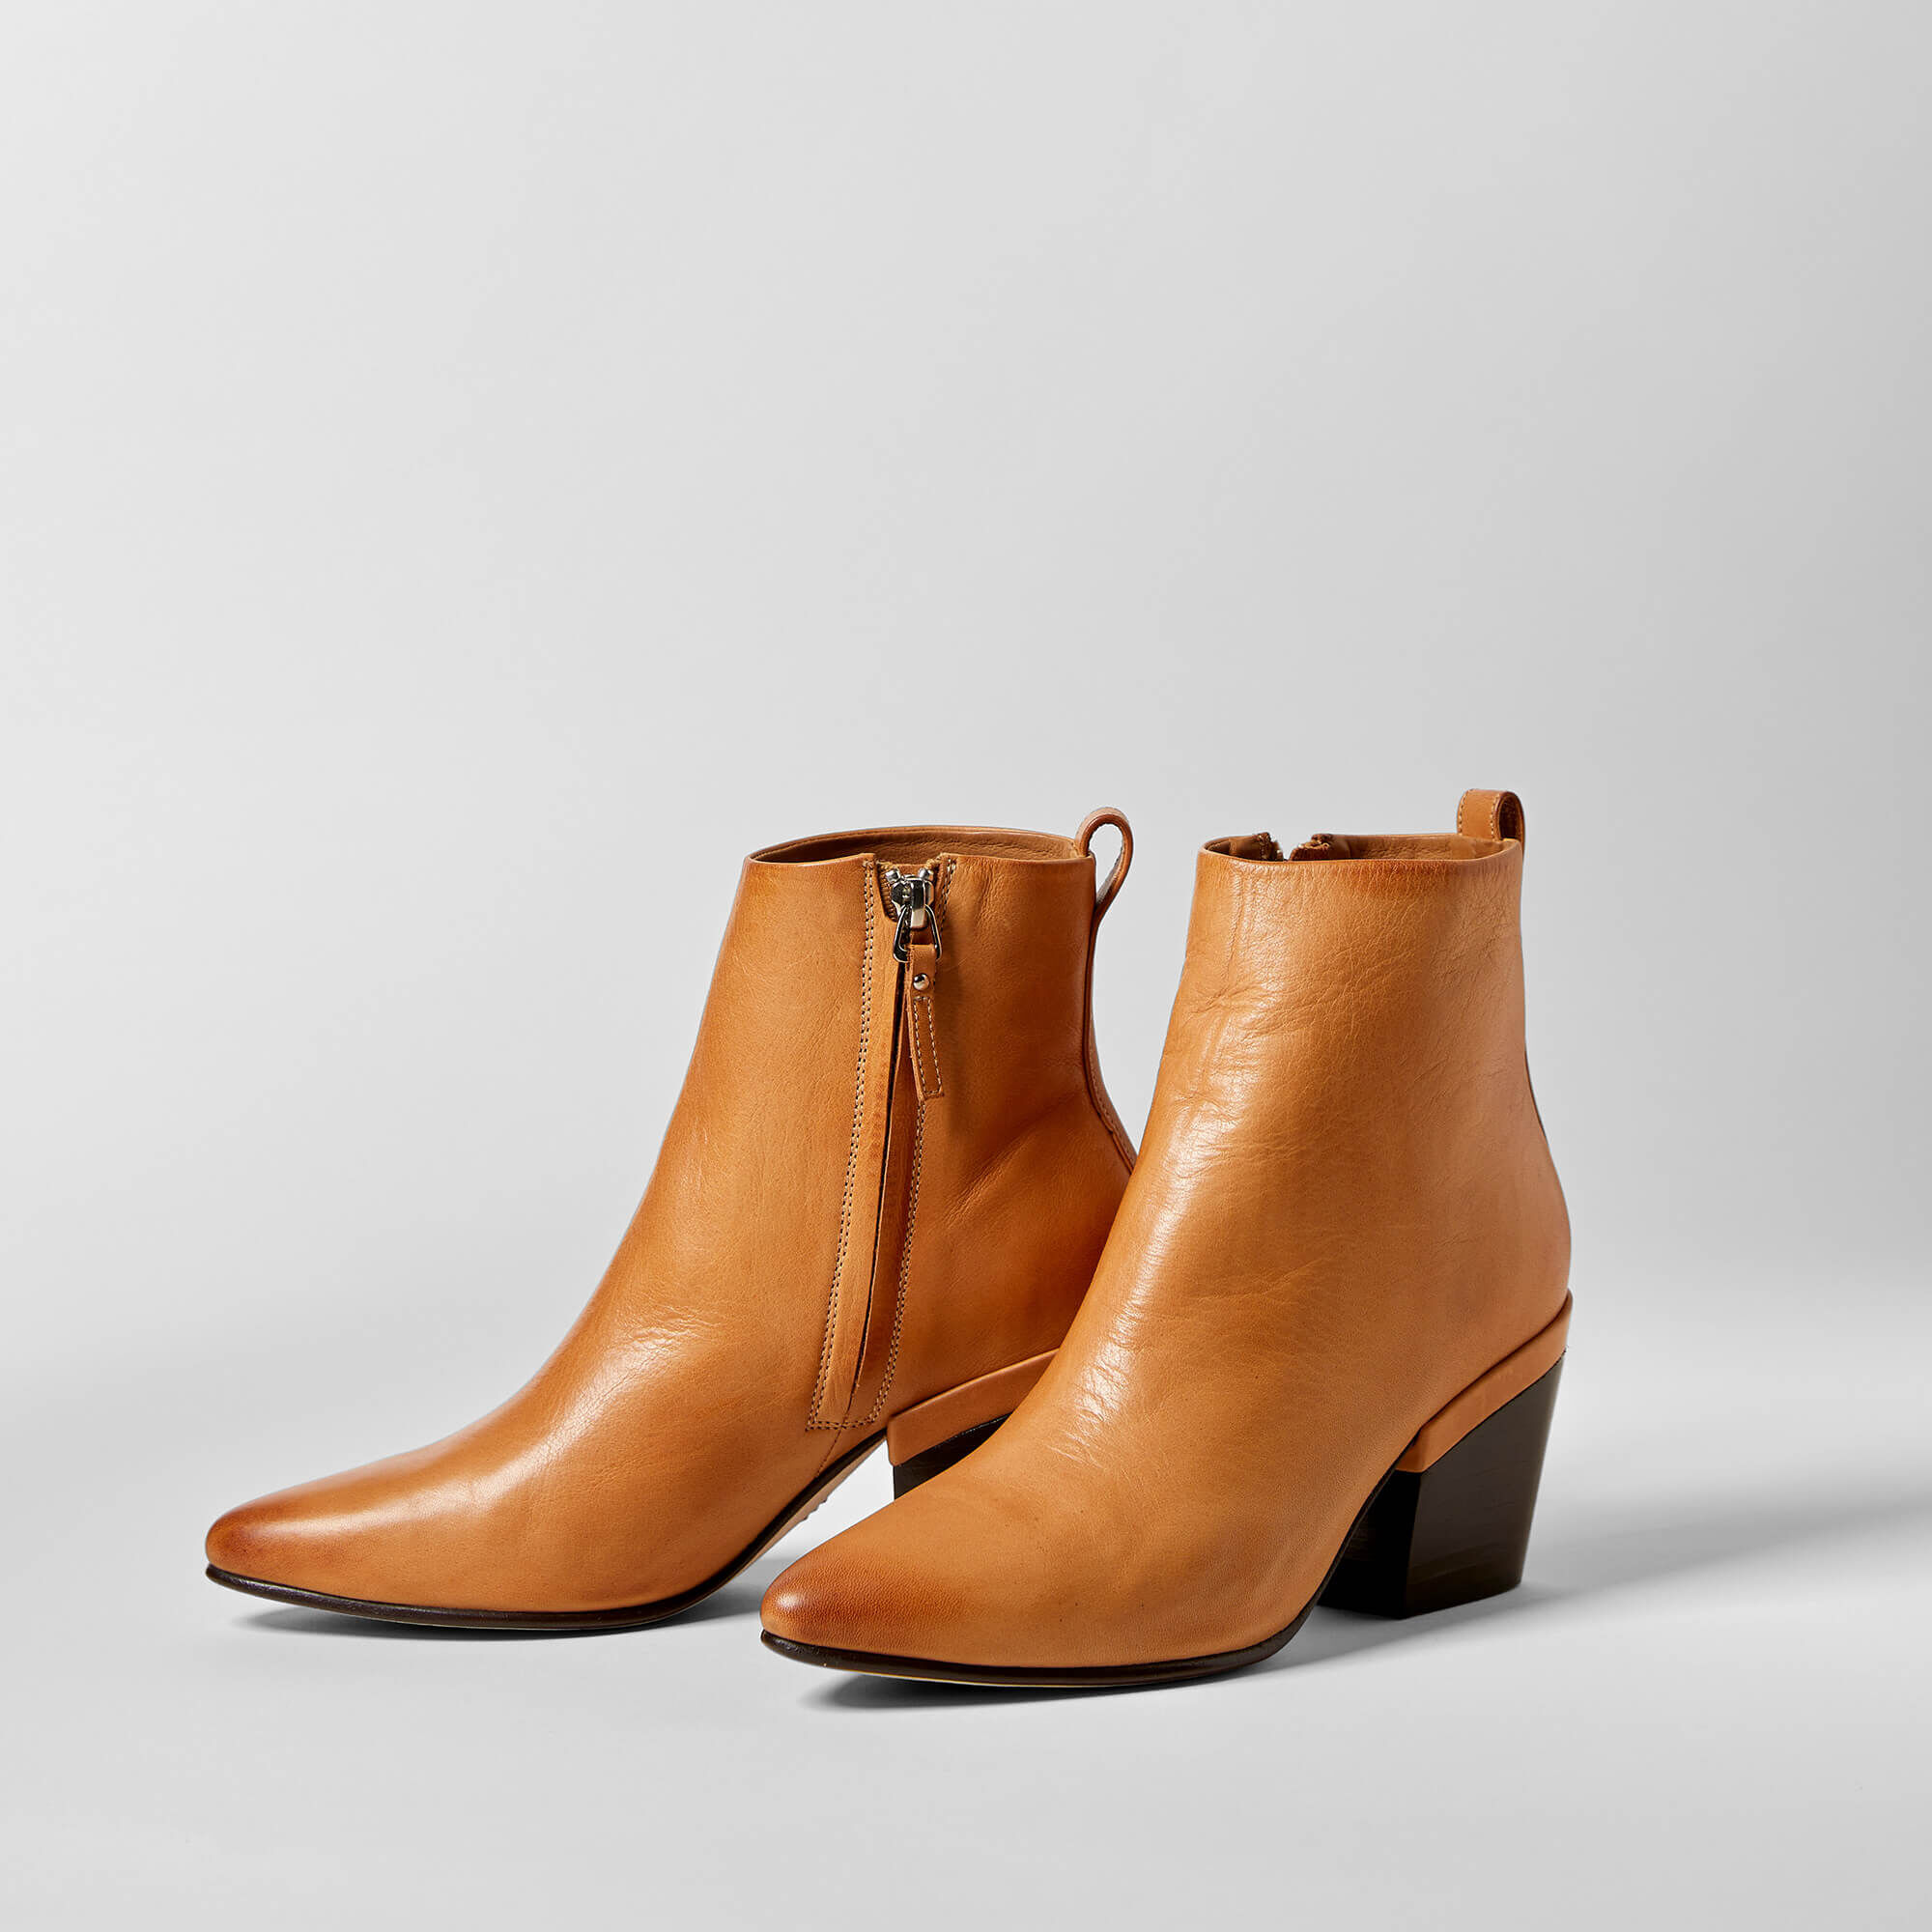 Women's Selena Booties in Natural Tan Leather by Ariat Two24